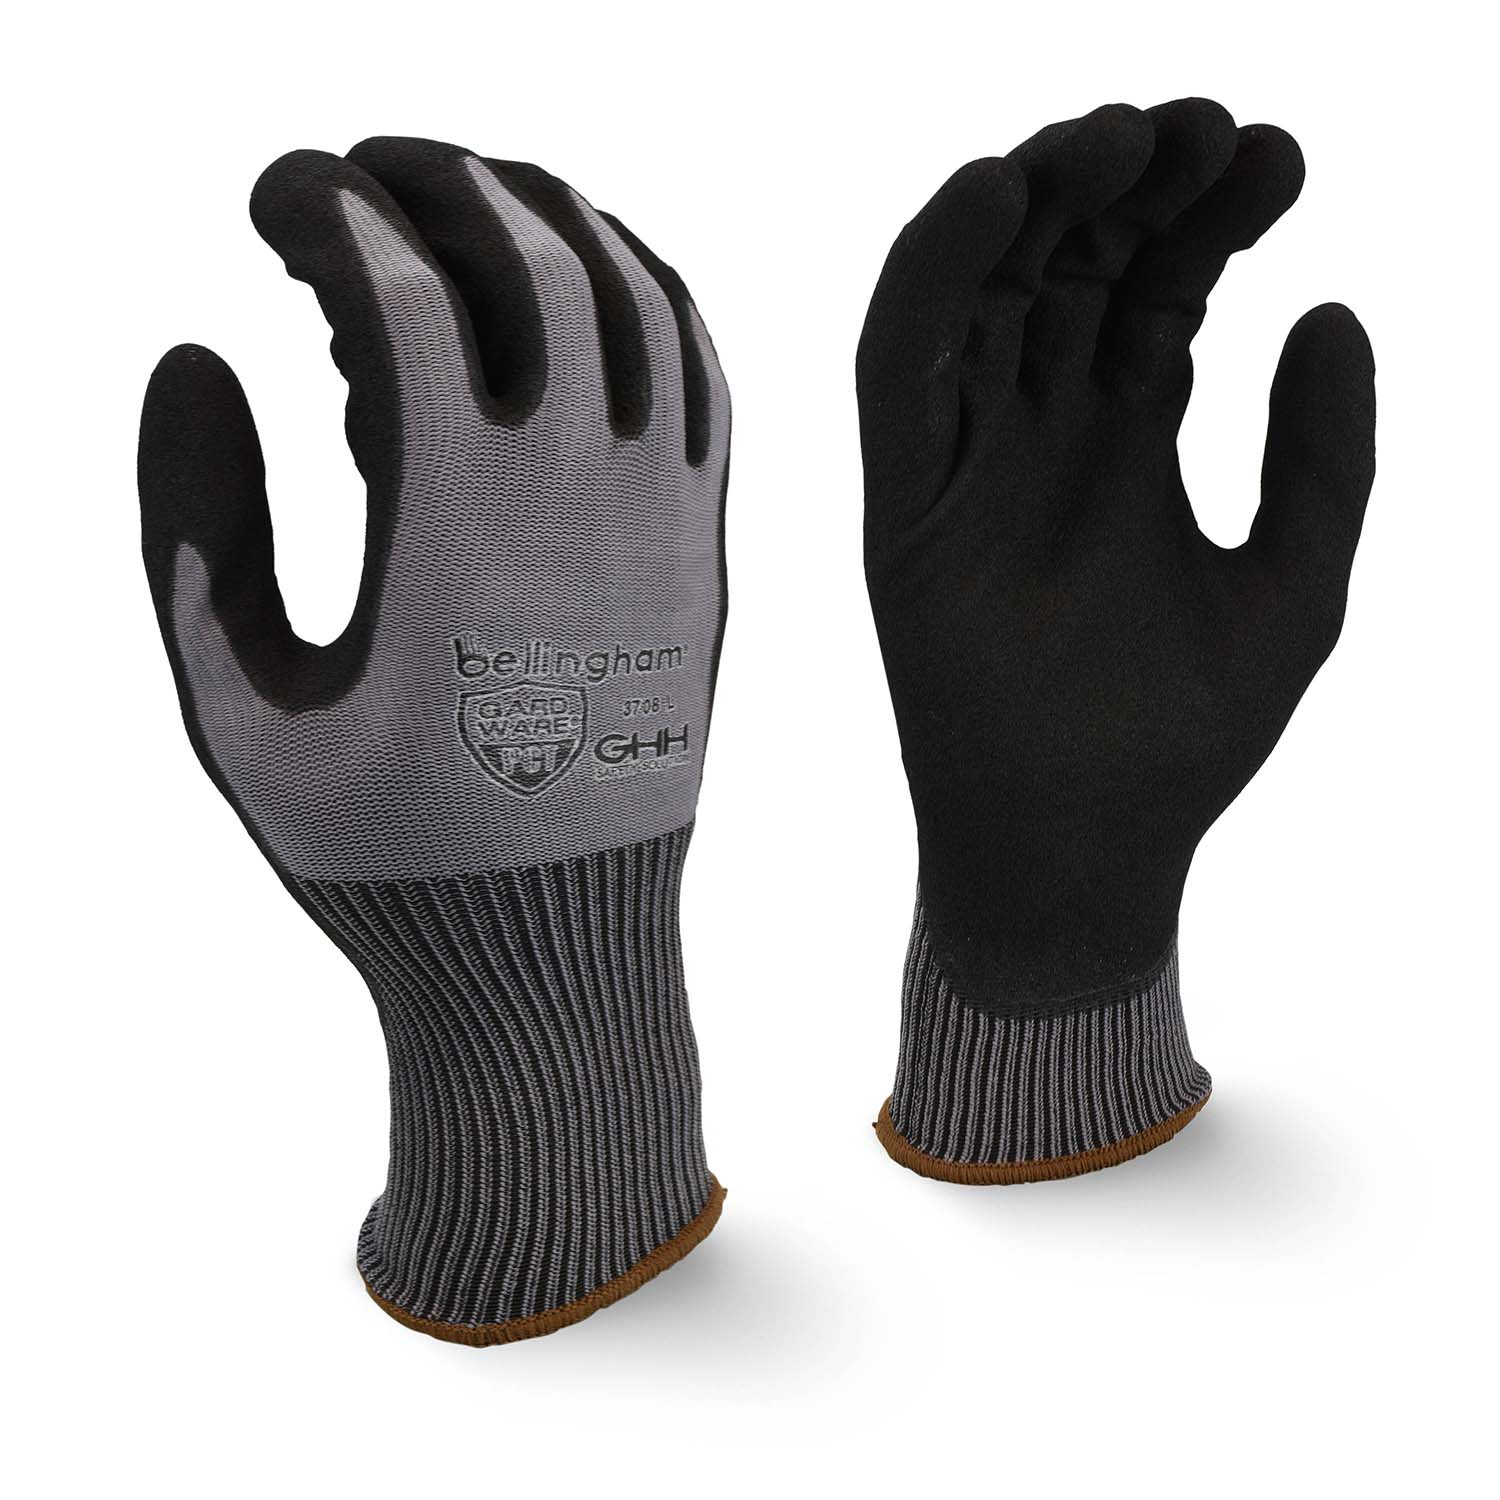 Bellingham Glove 3708 Oil-Proof Durability PCT™ Palm Glove